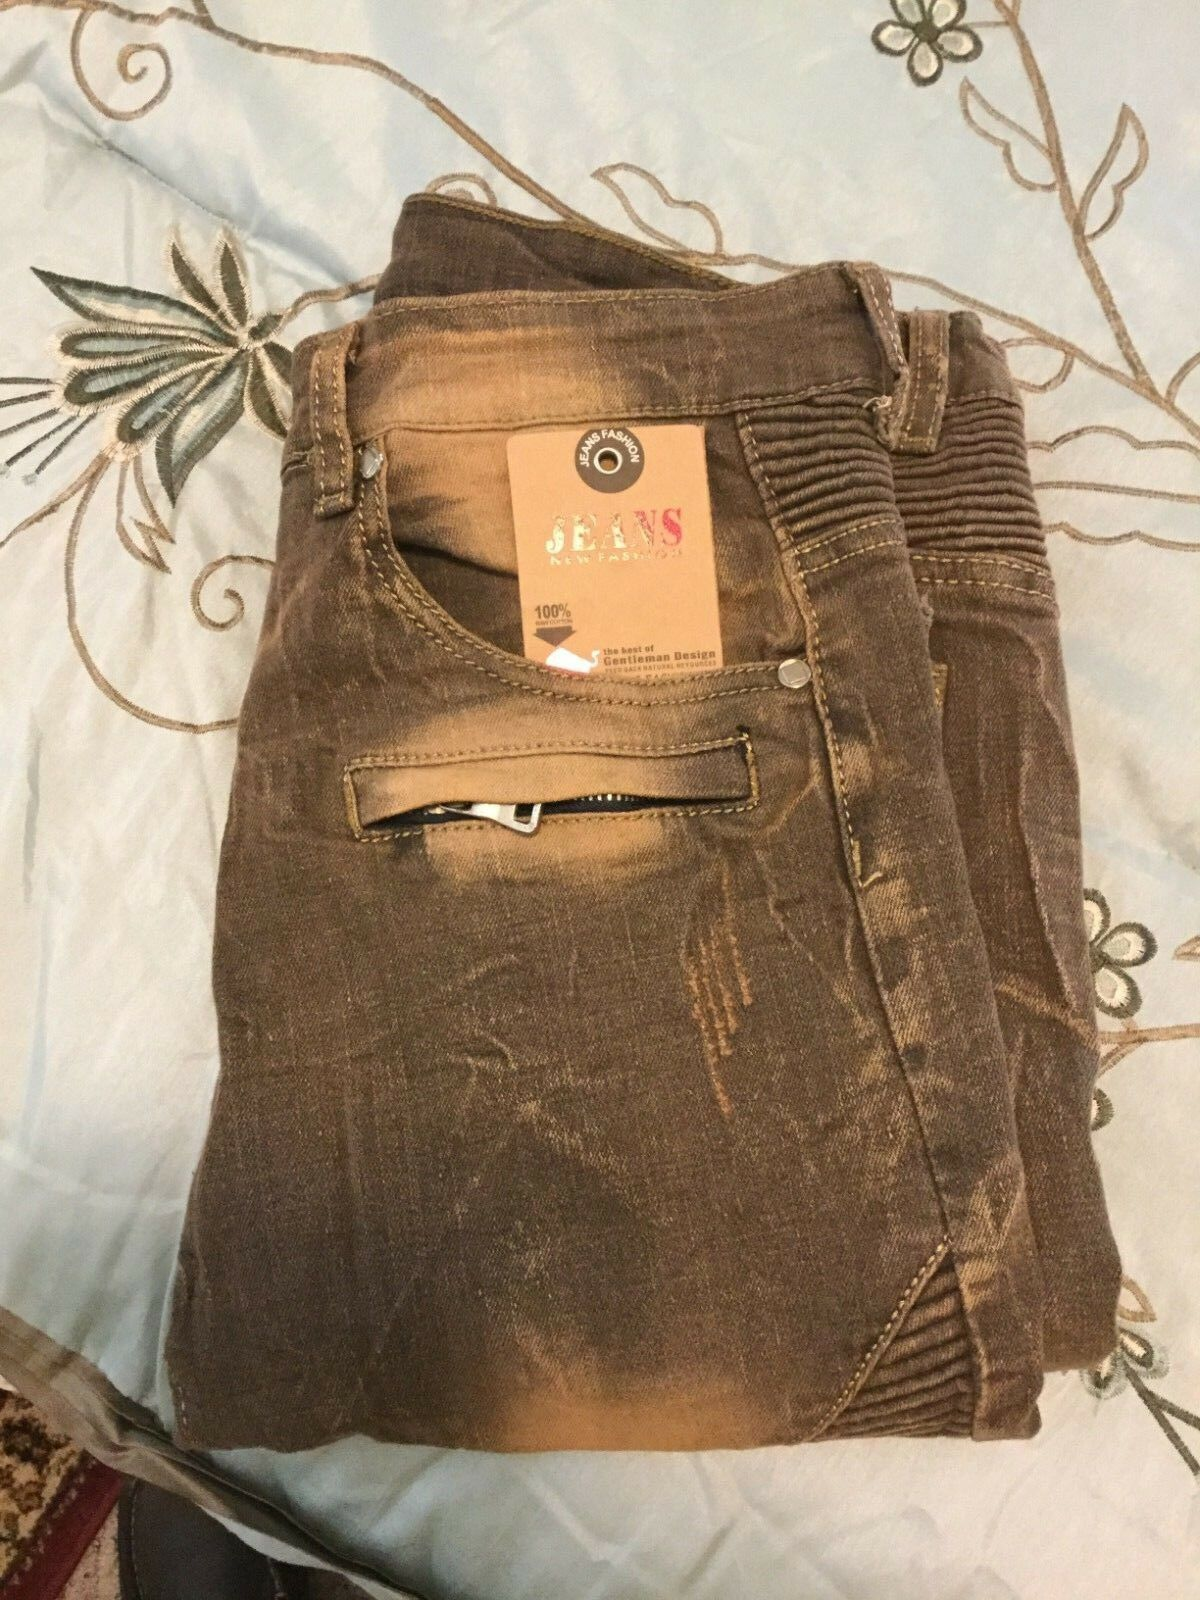 FEESON JEANS 33 SLIM FIT, STRAIGHT LEG DISTRESSED RIPPED